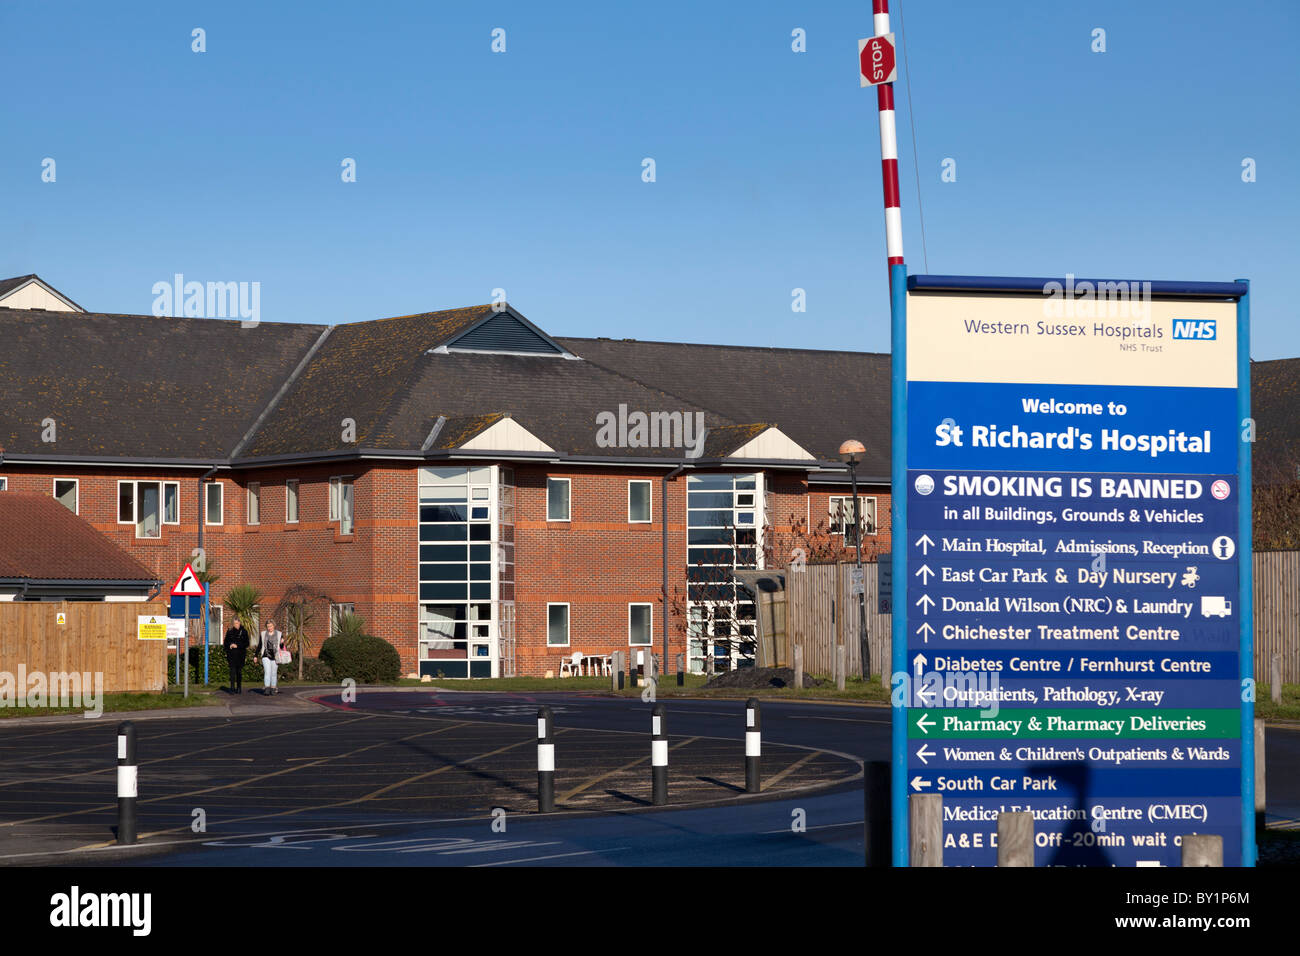 direction sign board exterior of St Richards,  Chichester Hospital - Stock Image